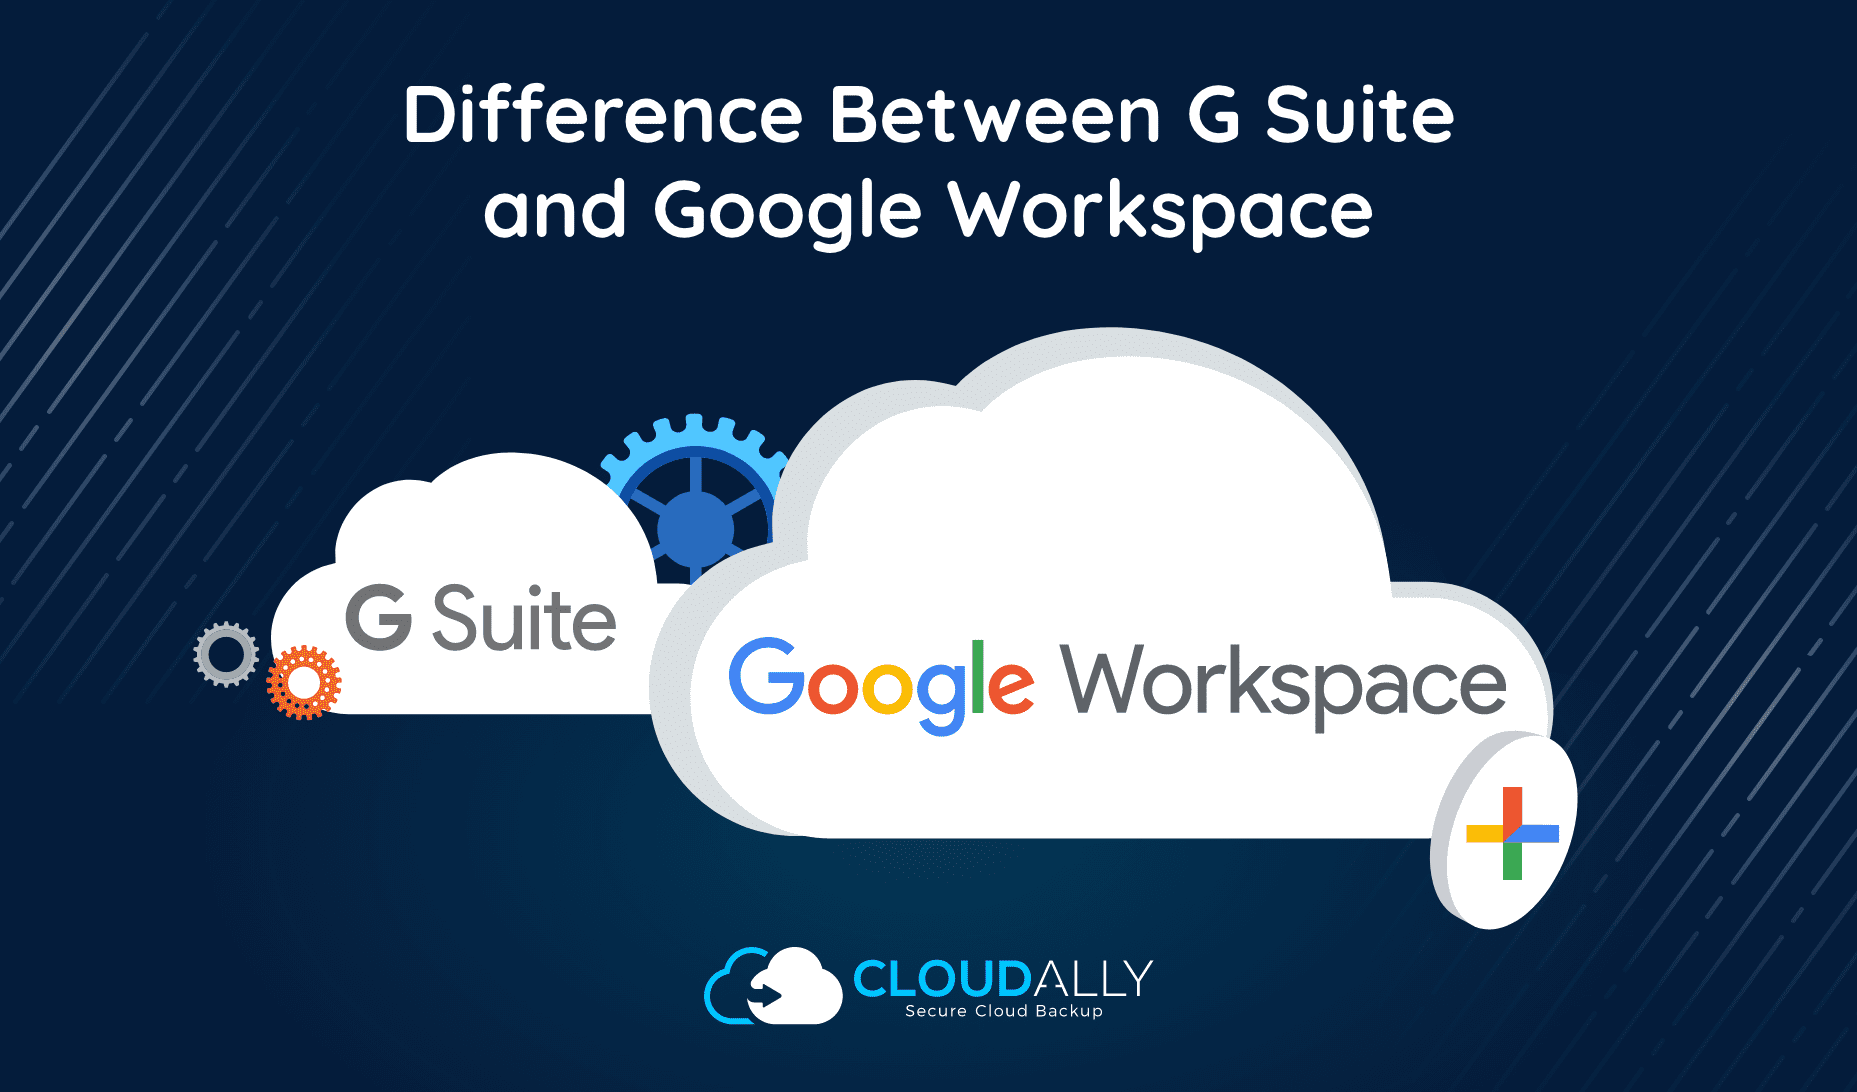 Renaming gsuite to google workspace. What's the difference between them